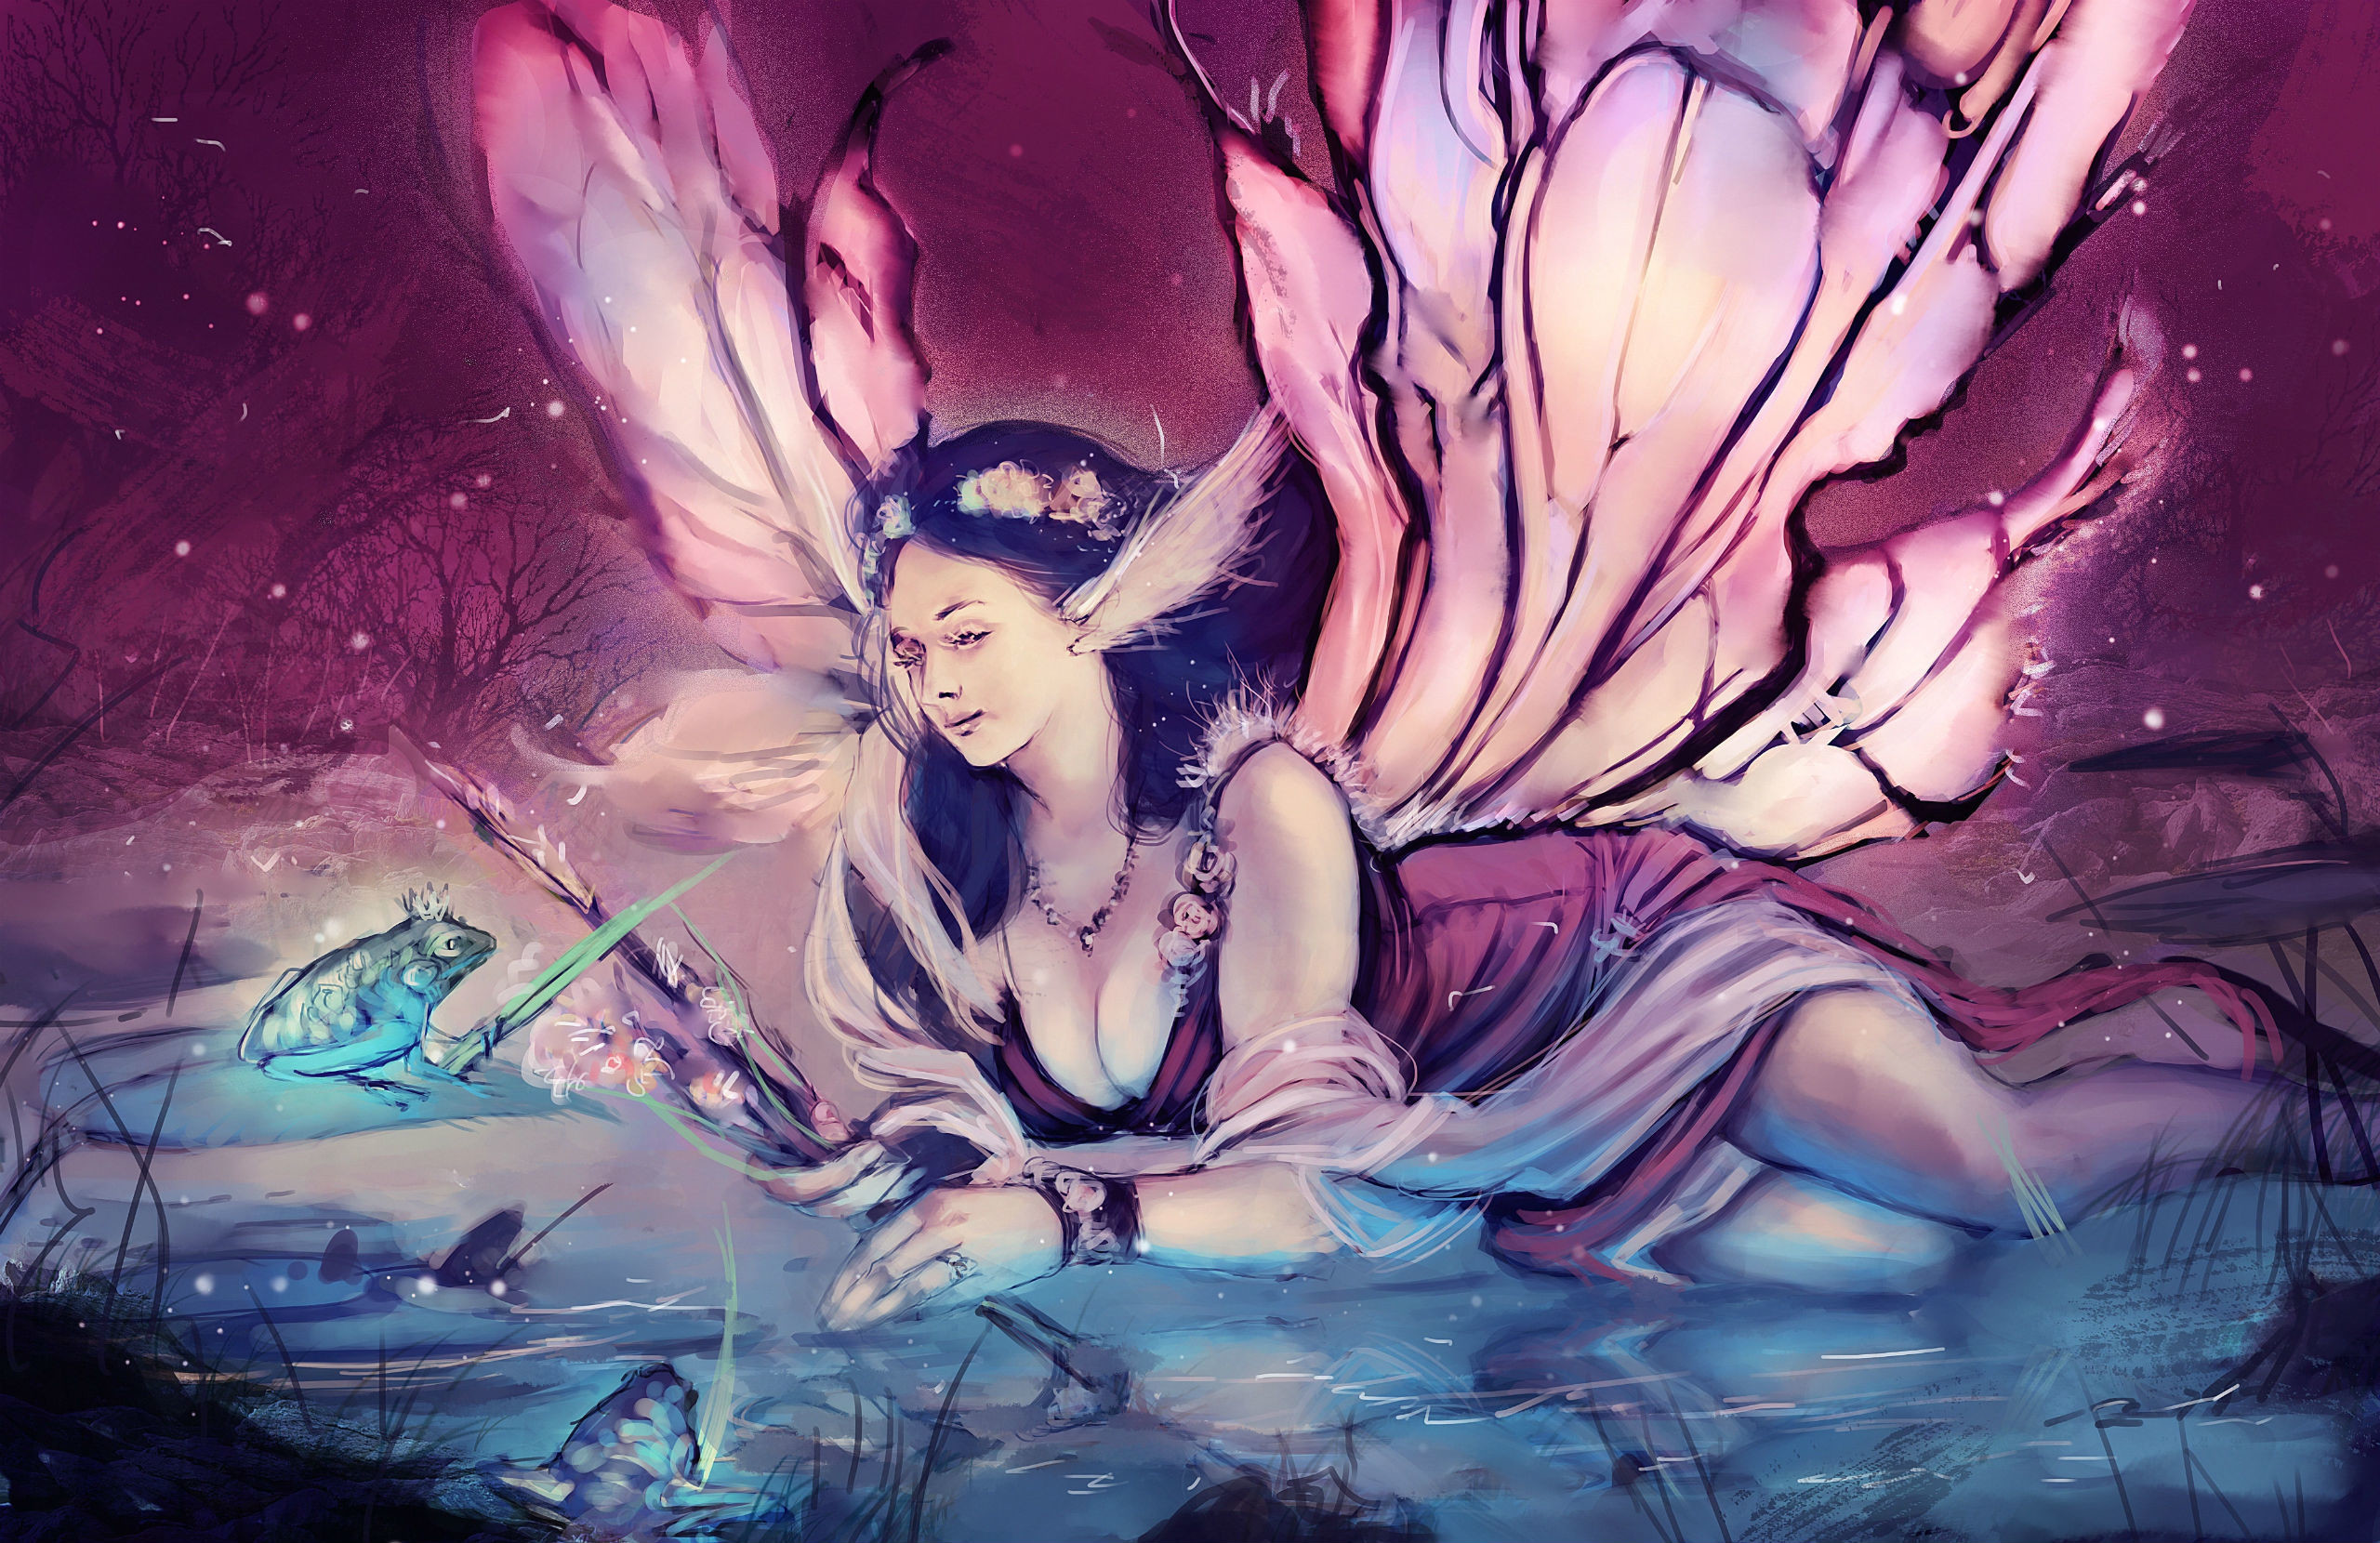 Res: 2560x1660, Fairies Wings Fantasy Girls fairy wallpaper |  | 118278 |  WallpaperUP